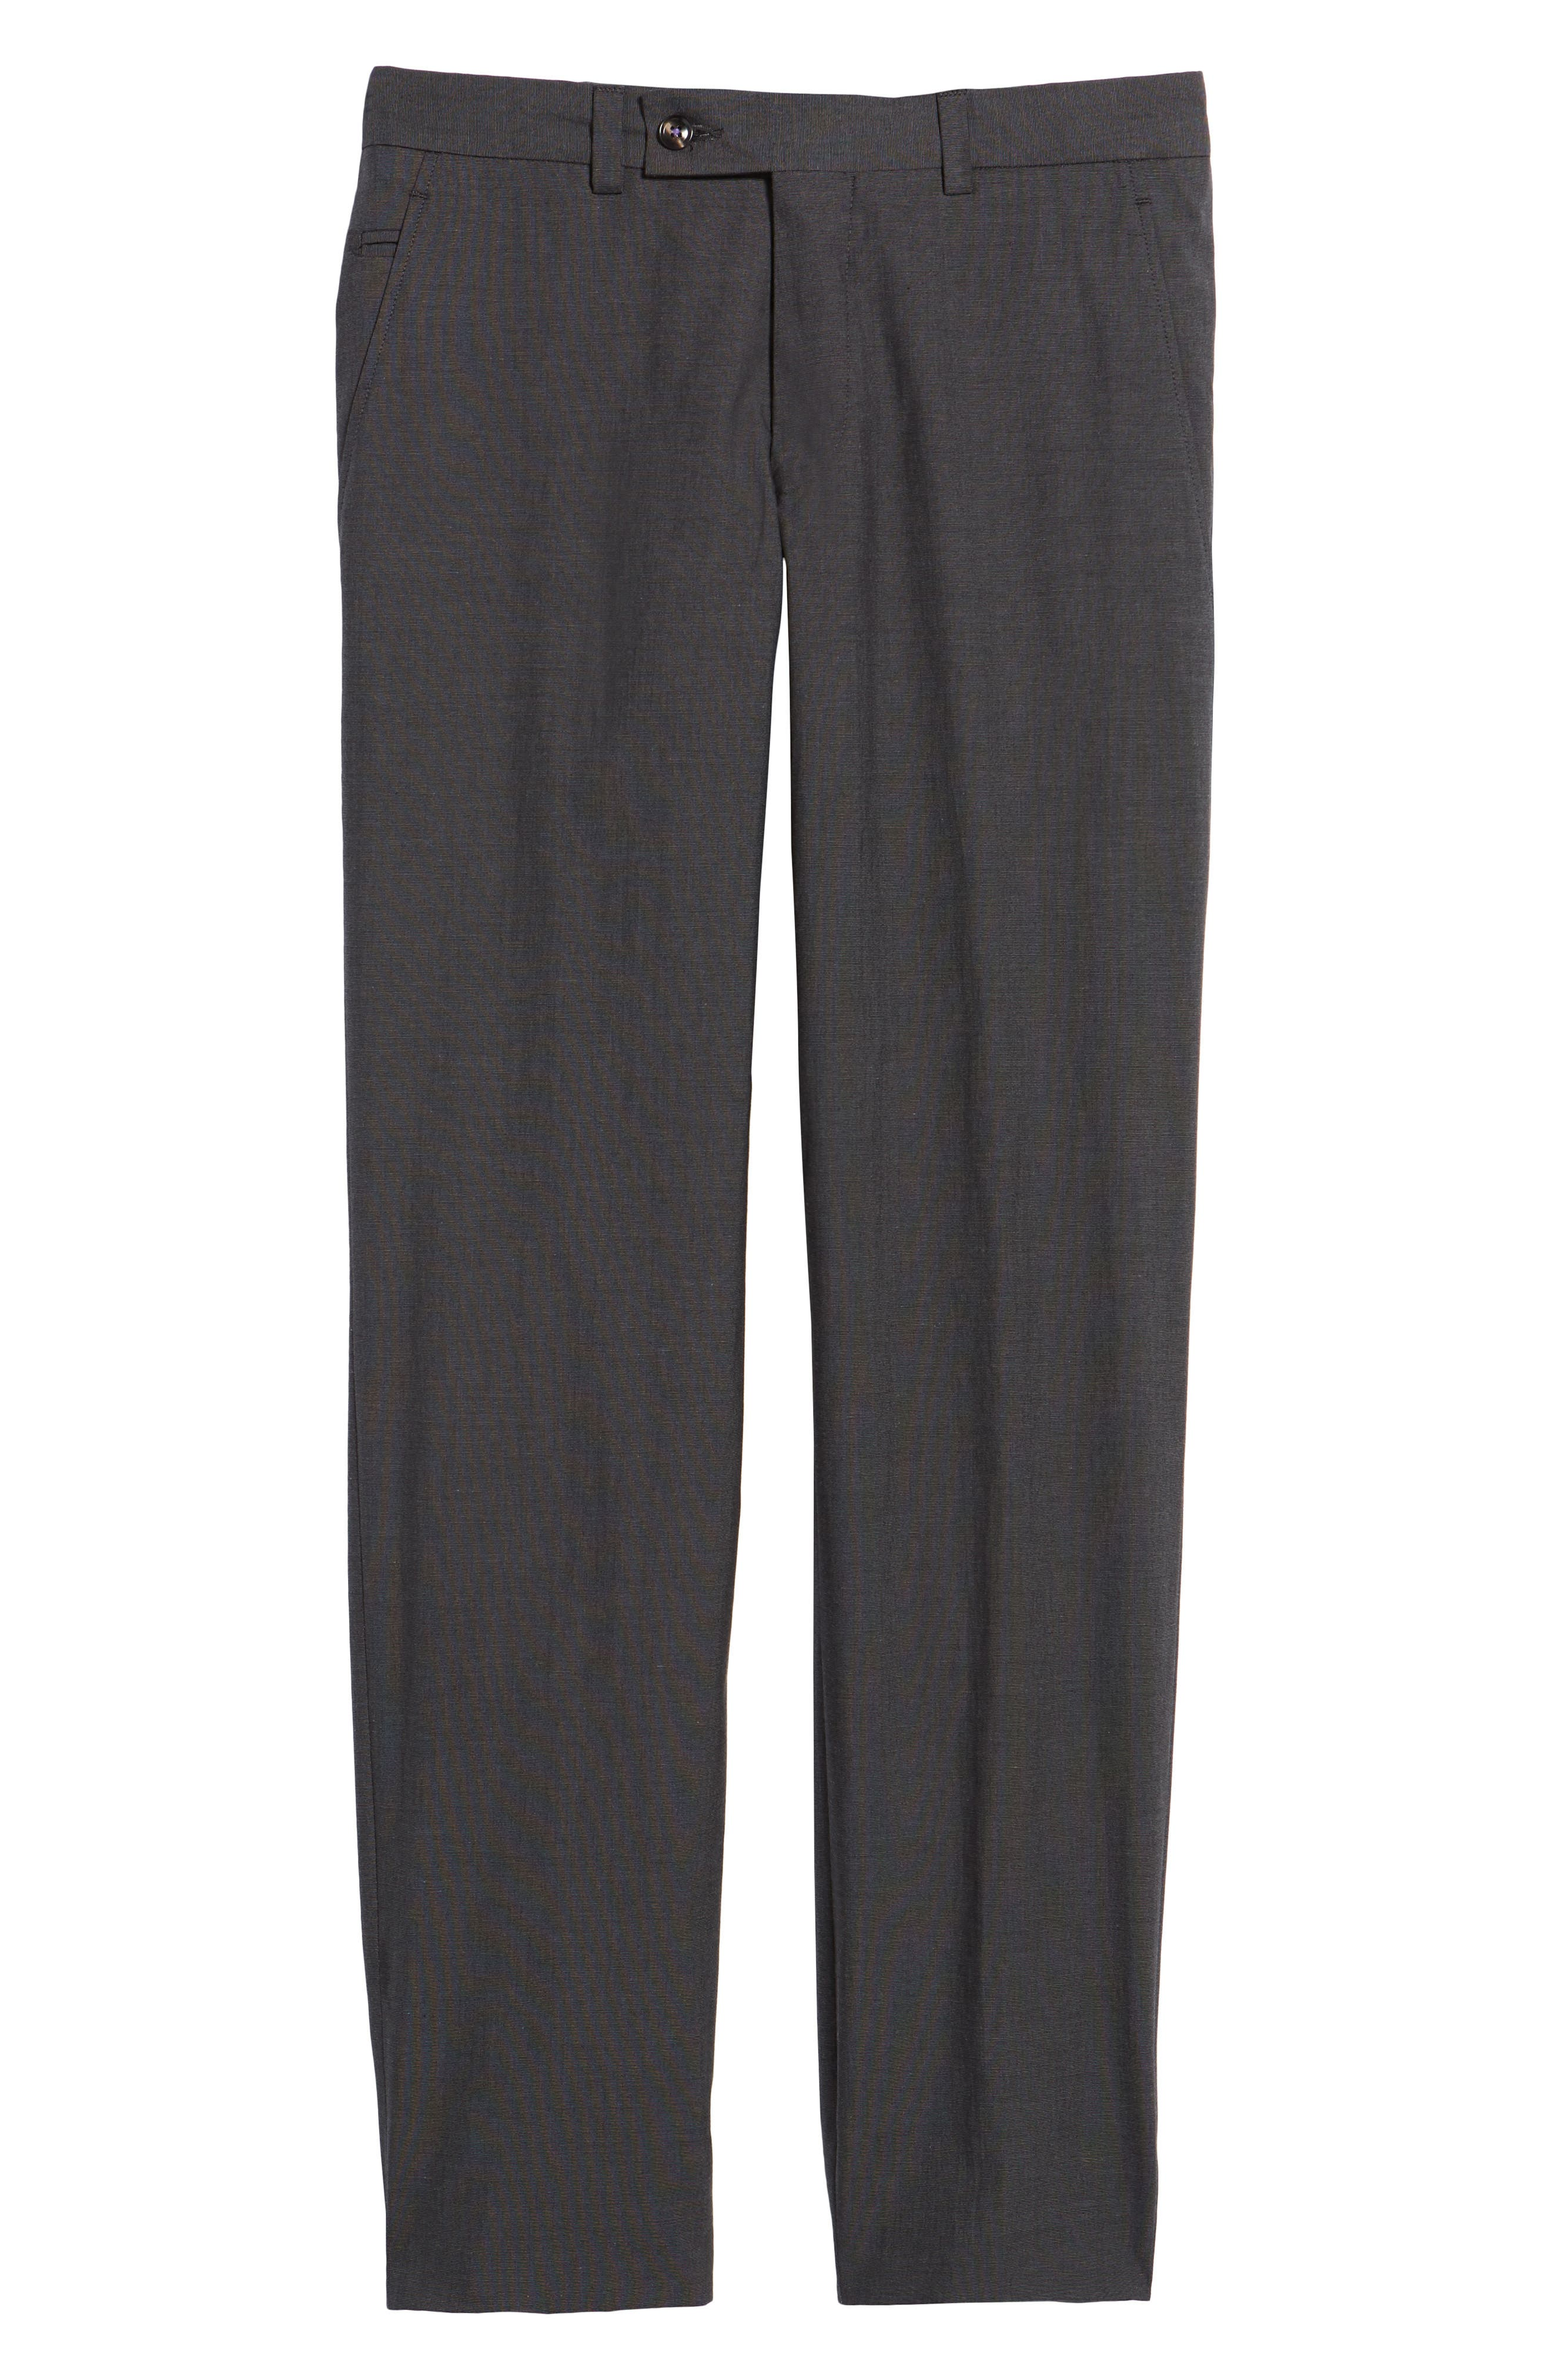 Jerome Flat Front Stretch Solid Cotton Trousers,                             Alternate thumbnail 6, color,                             Charcoal